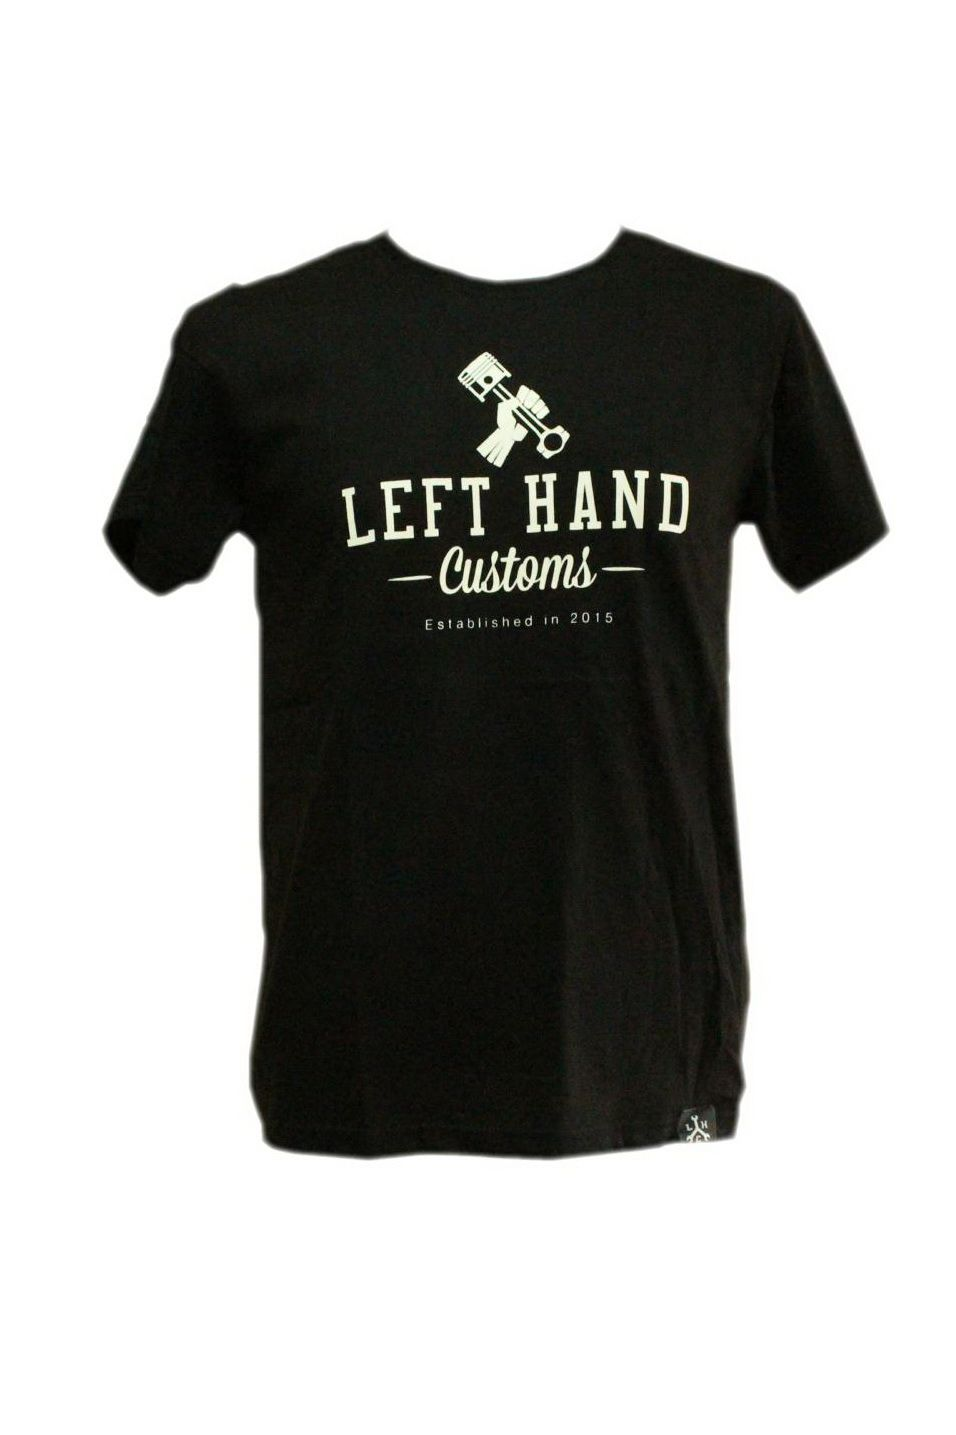 Left Hand Customs T-Shirt (LHC03)